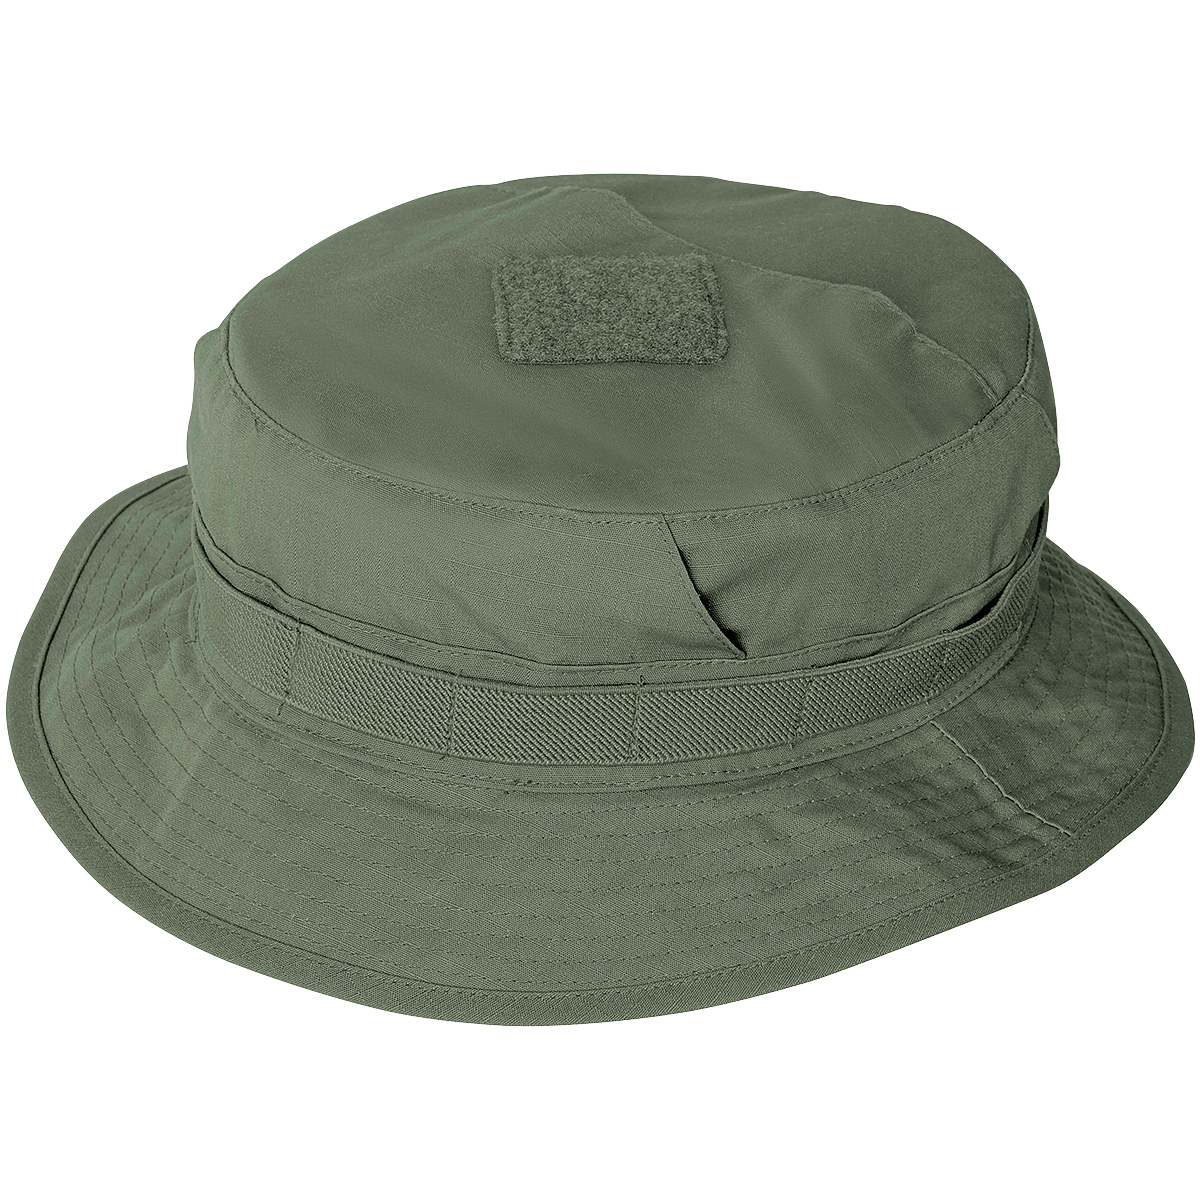 f0243675787 Details about Helikon Tactical CPU Hat GI Boonie Jungle Bush Cap Survival  Hiking Olive Drab